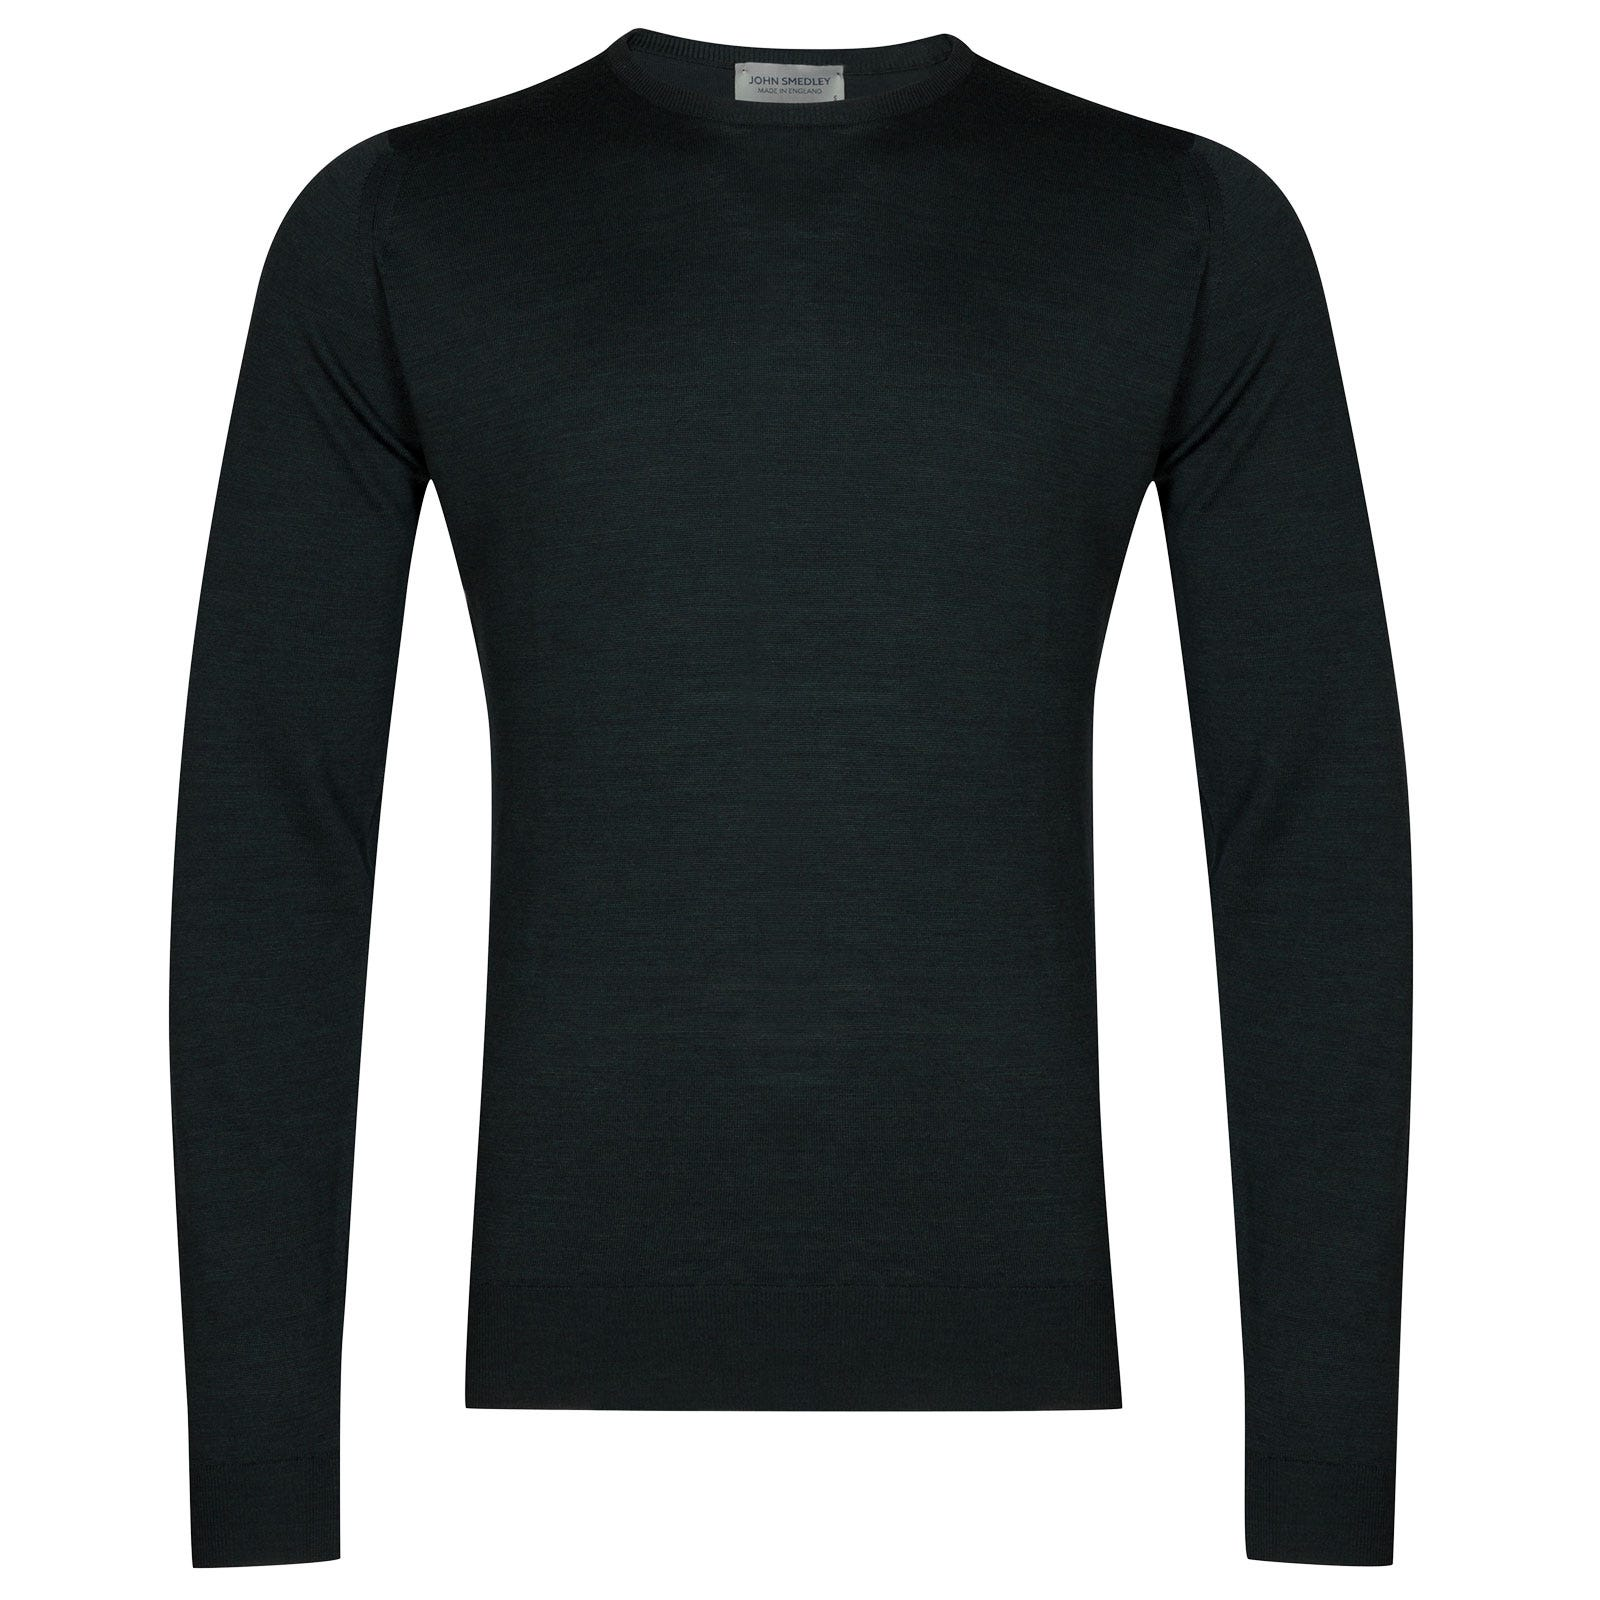 John Smedley lundy Merino Wool Pullover in Racing Green-S